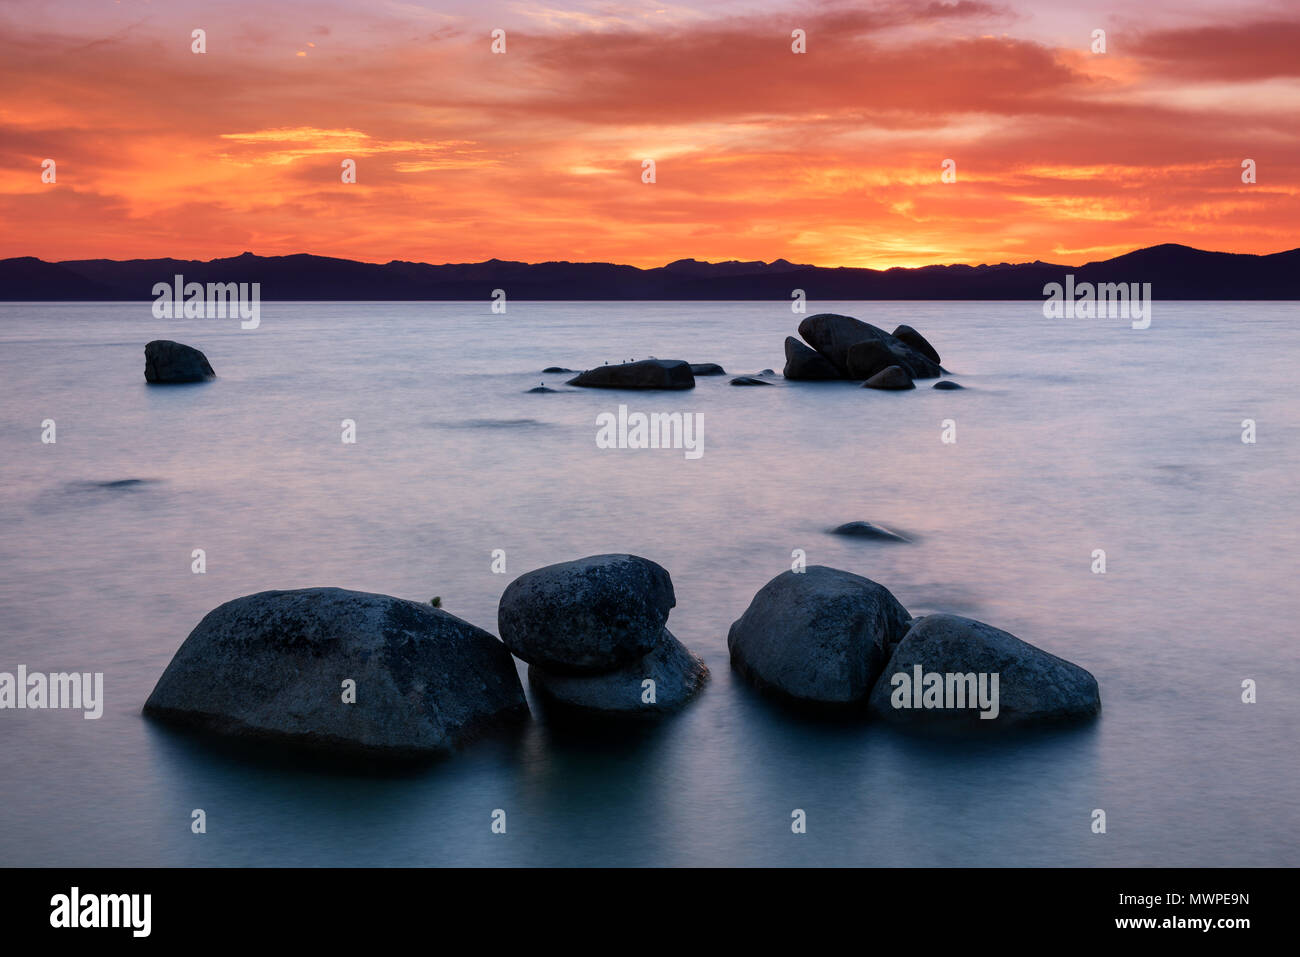 Lake Tahoe sunset at the famous Whale Beach near Incline Village, Nev., USA. - Stock Image